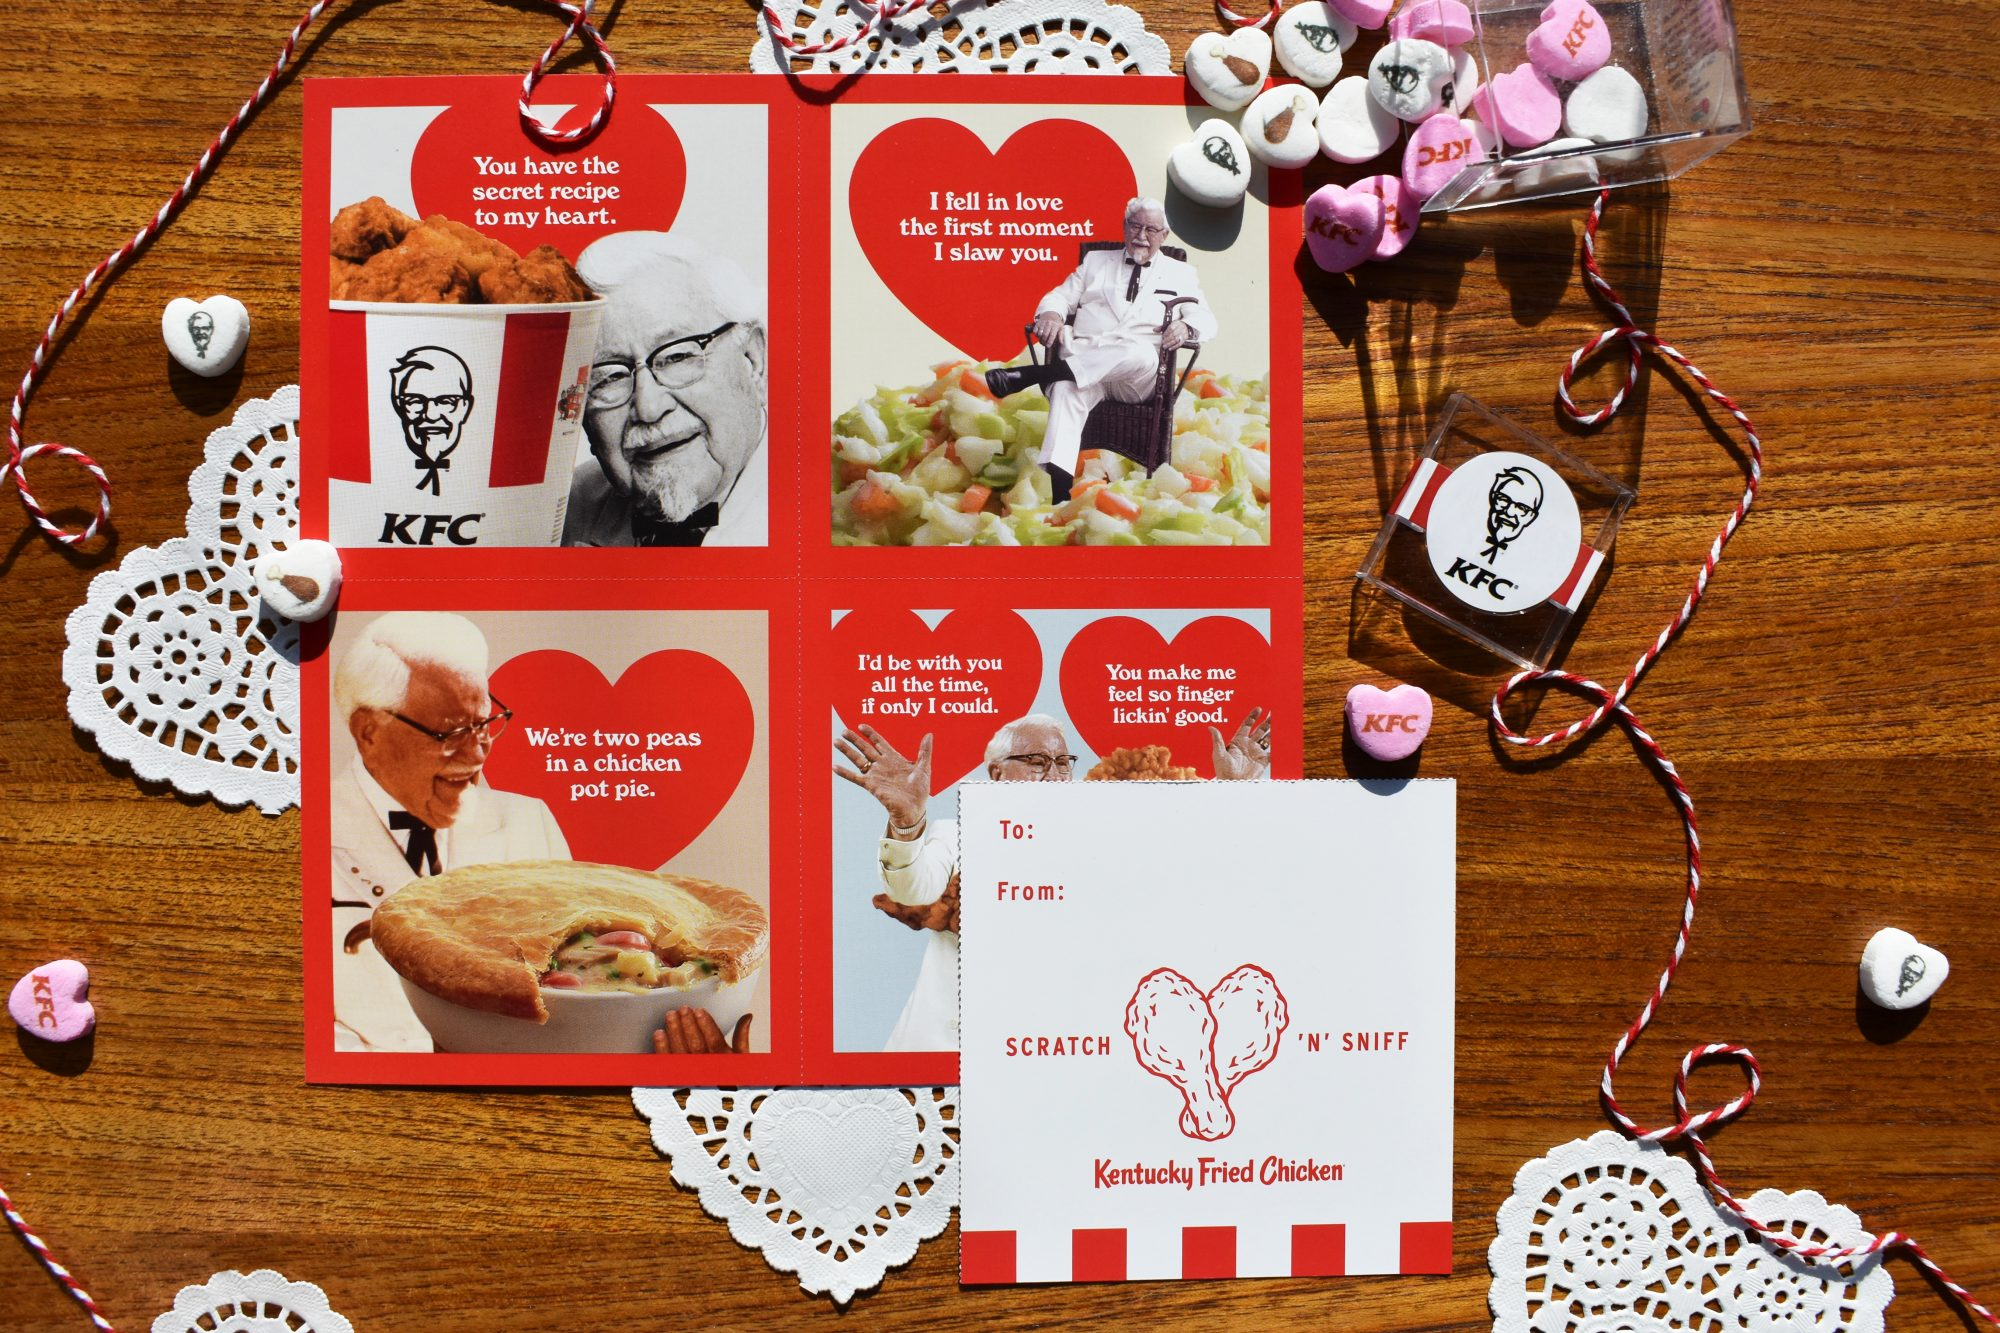 KFC's Scratch 'N' Sniff Valentines Smell Like Fried Chicken